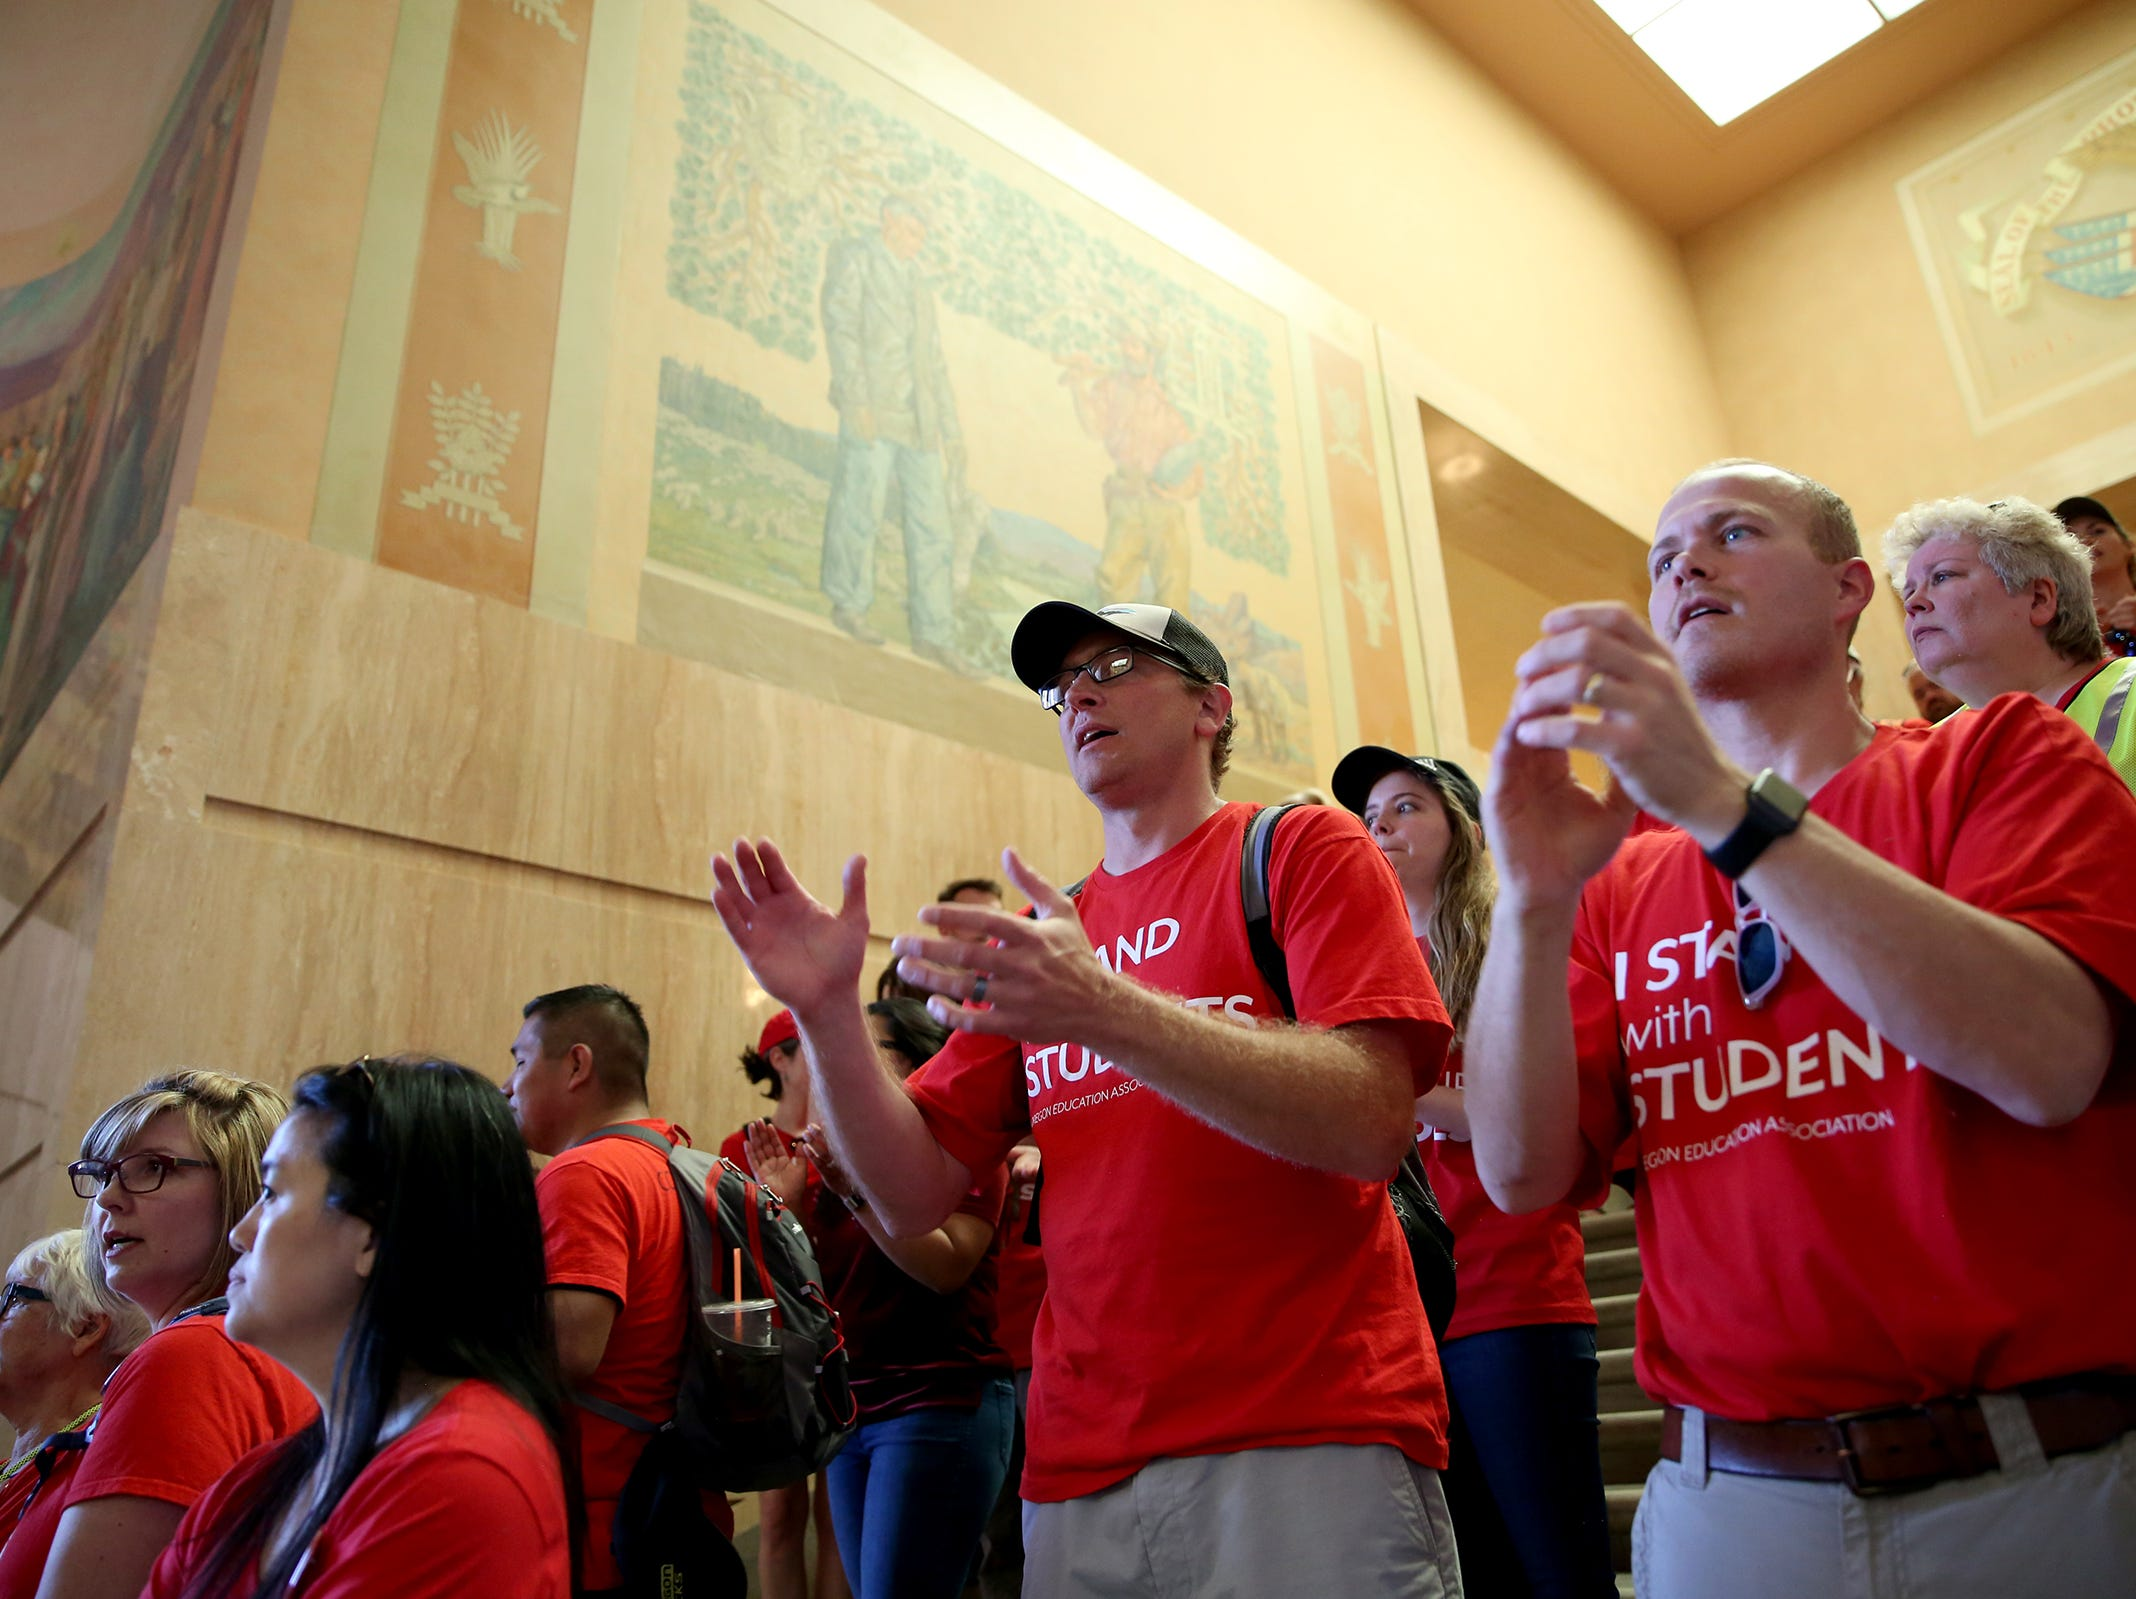 Thousands of teachers and education activists fill the rotunda to demand funding at the Oregon State Capitol in Salem on May 8, 2019.